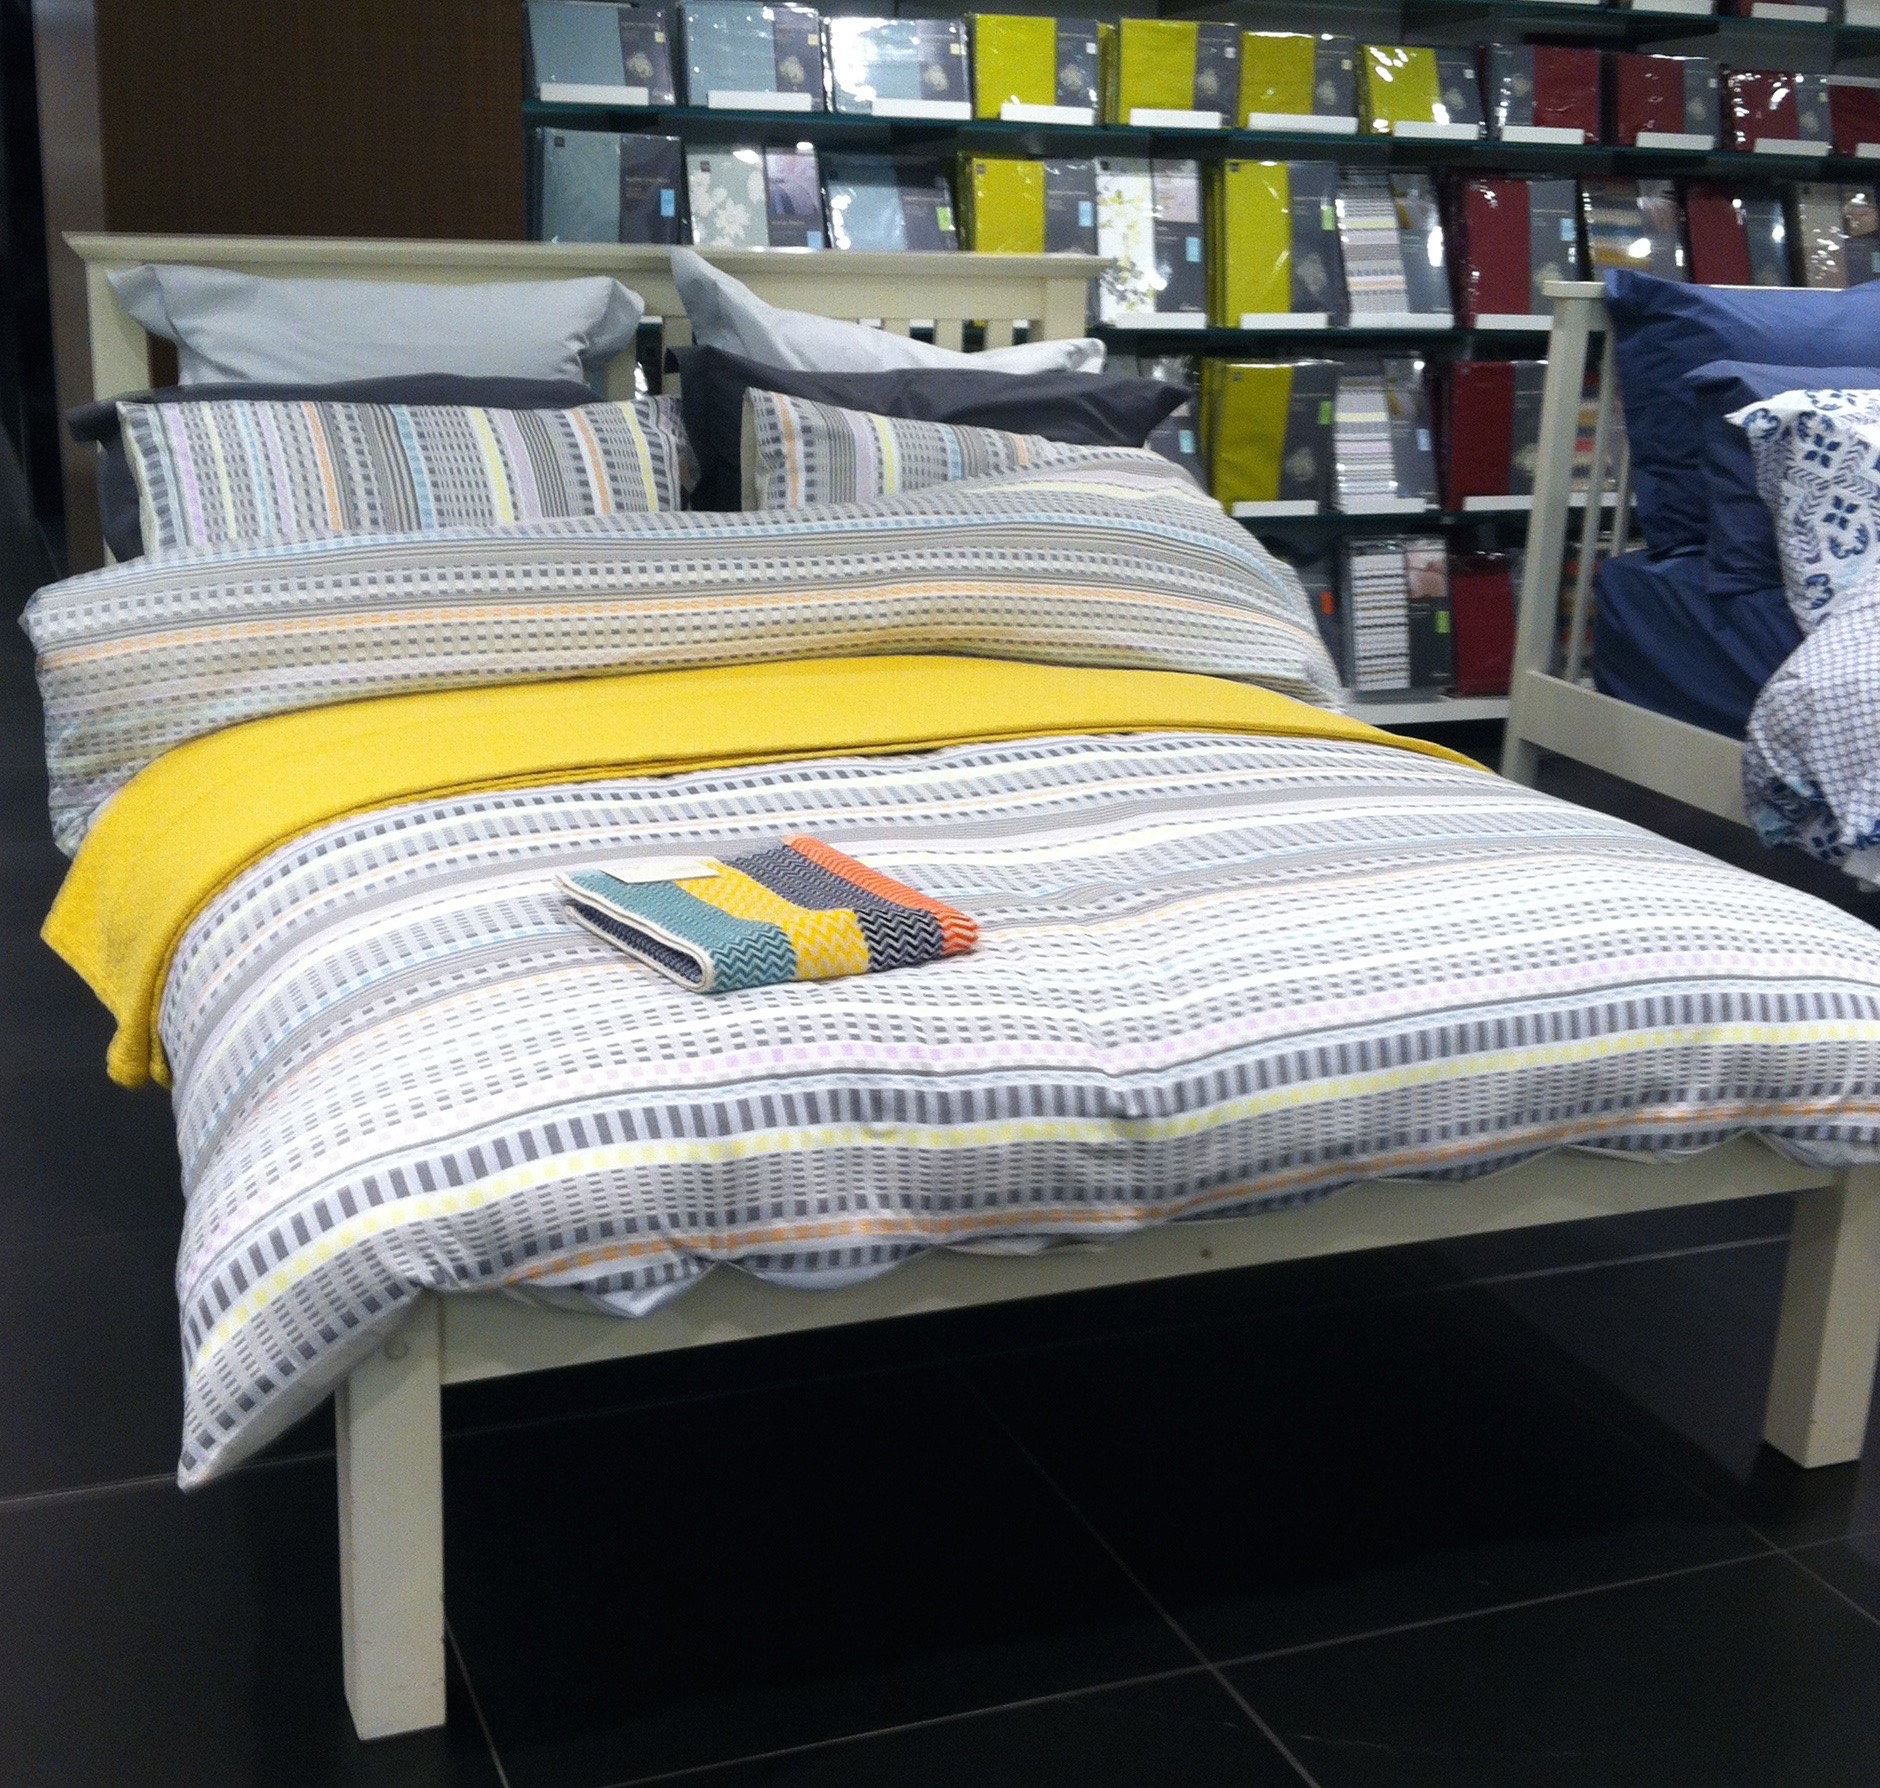 CALMING BUT STILL COLOURFUL BEDLINEN IN HOUSE OF FRASER